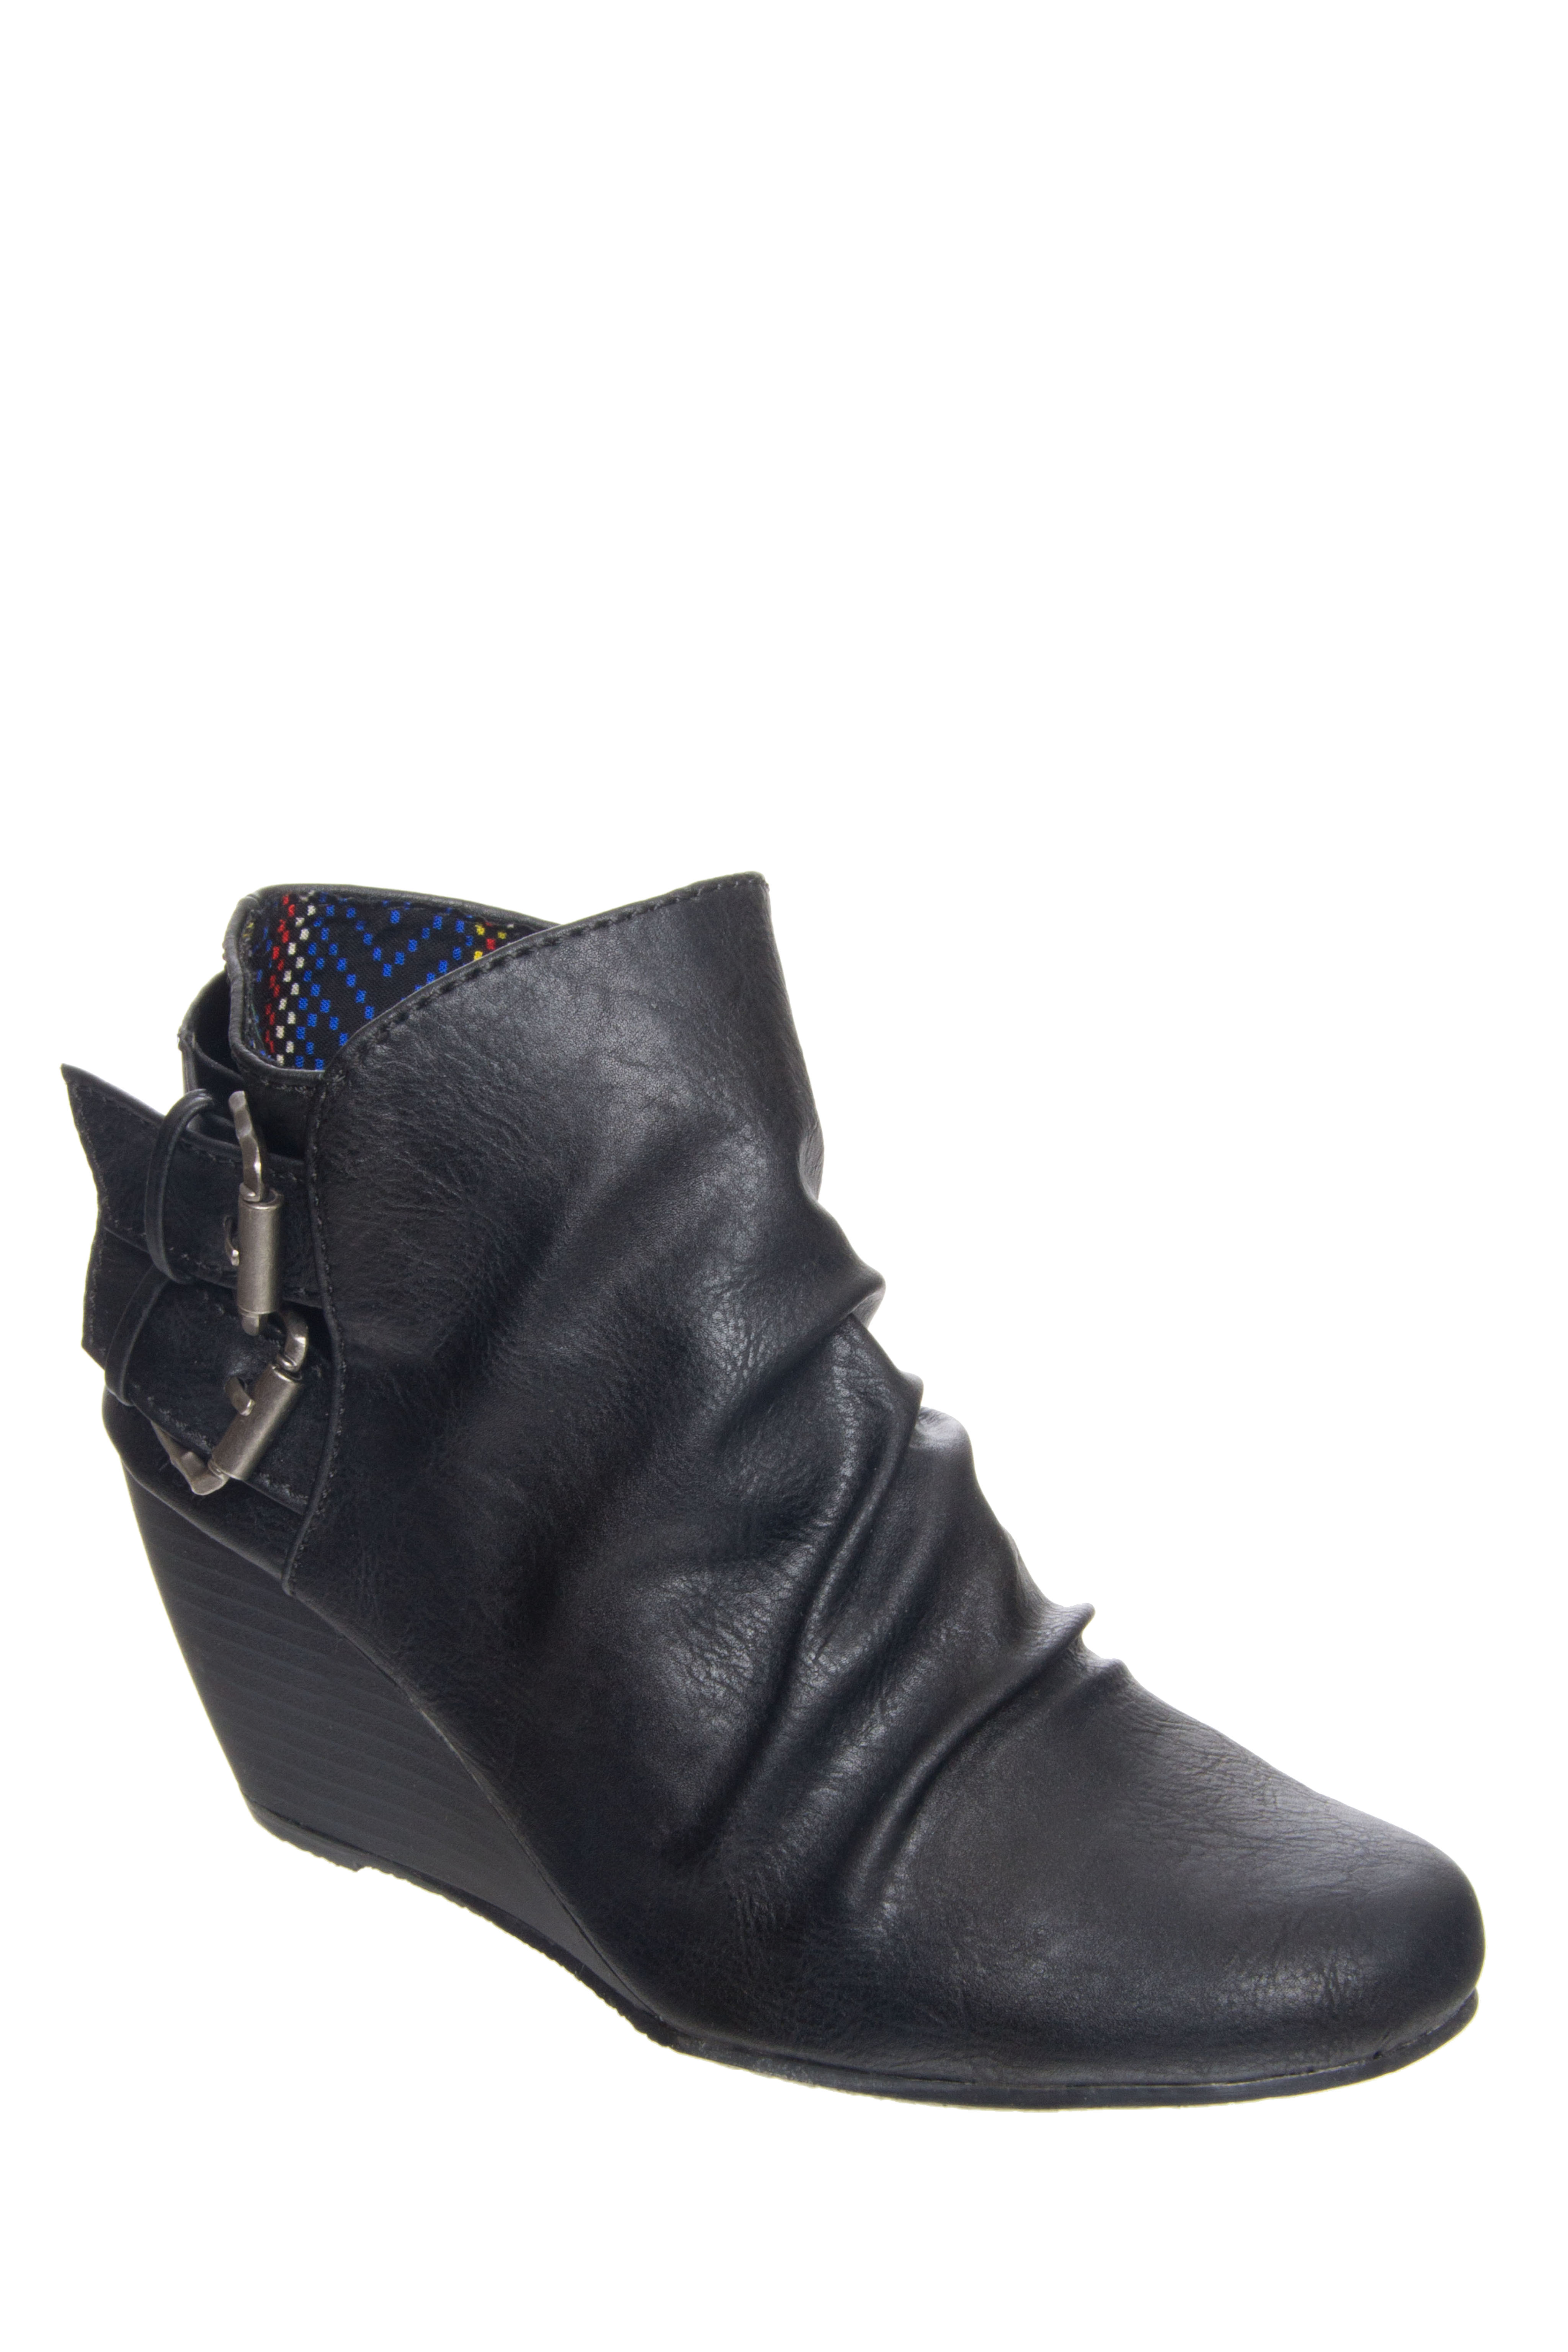 Blowfish Bug Mid Heel Booties - Black